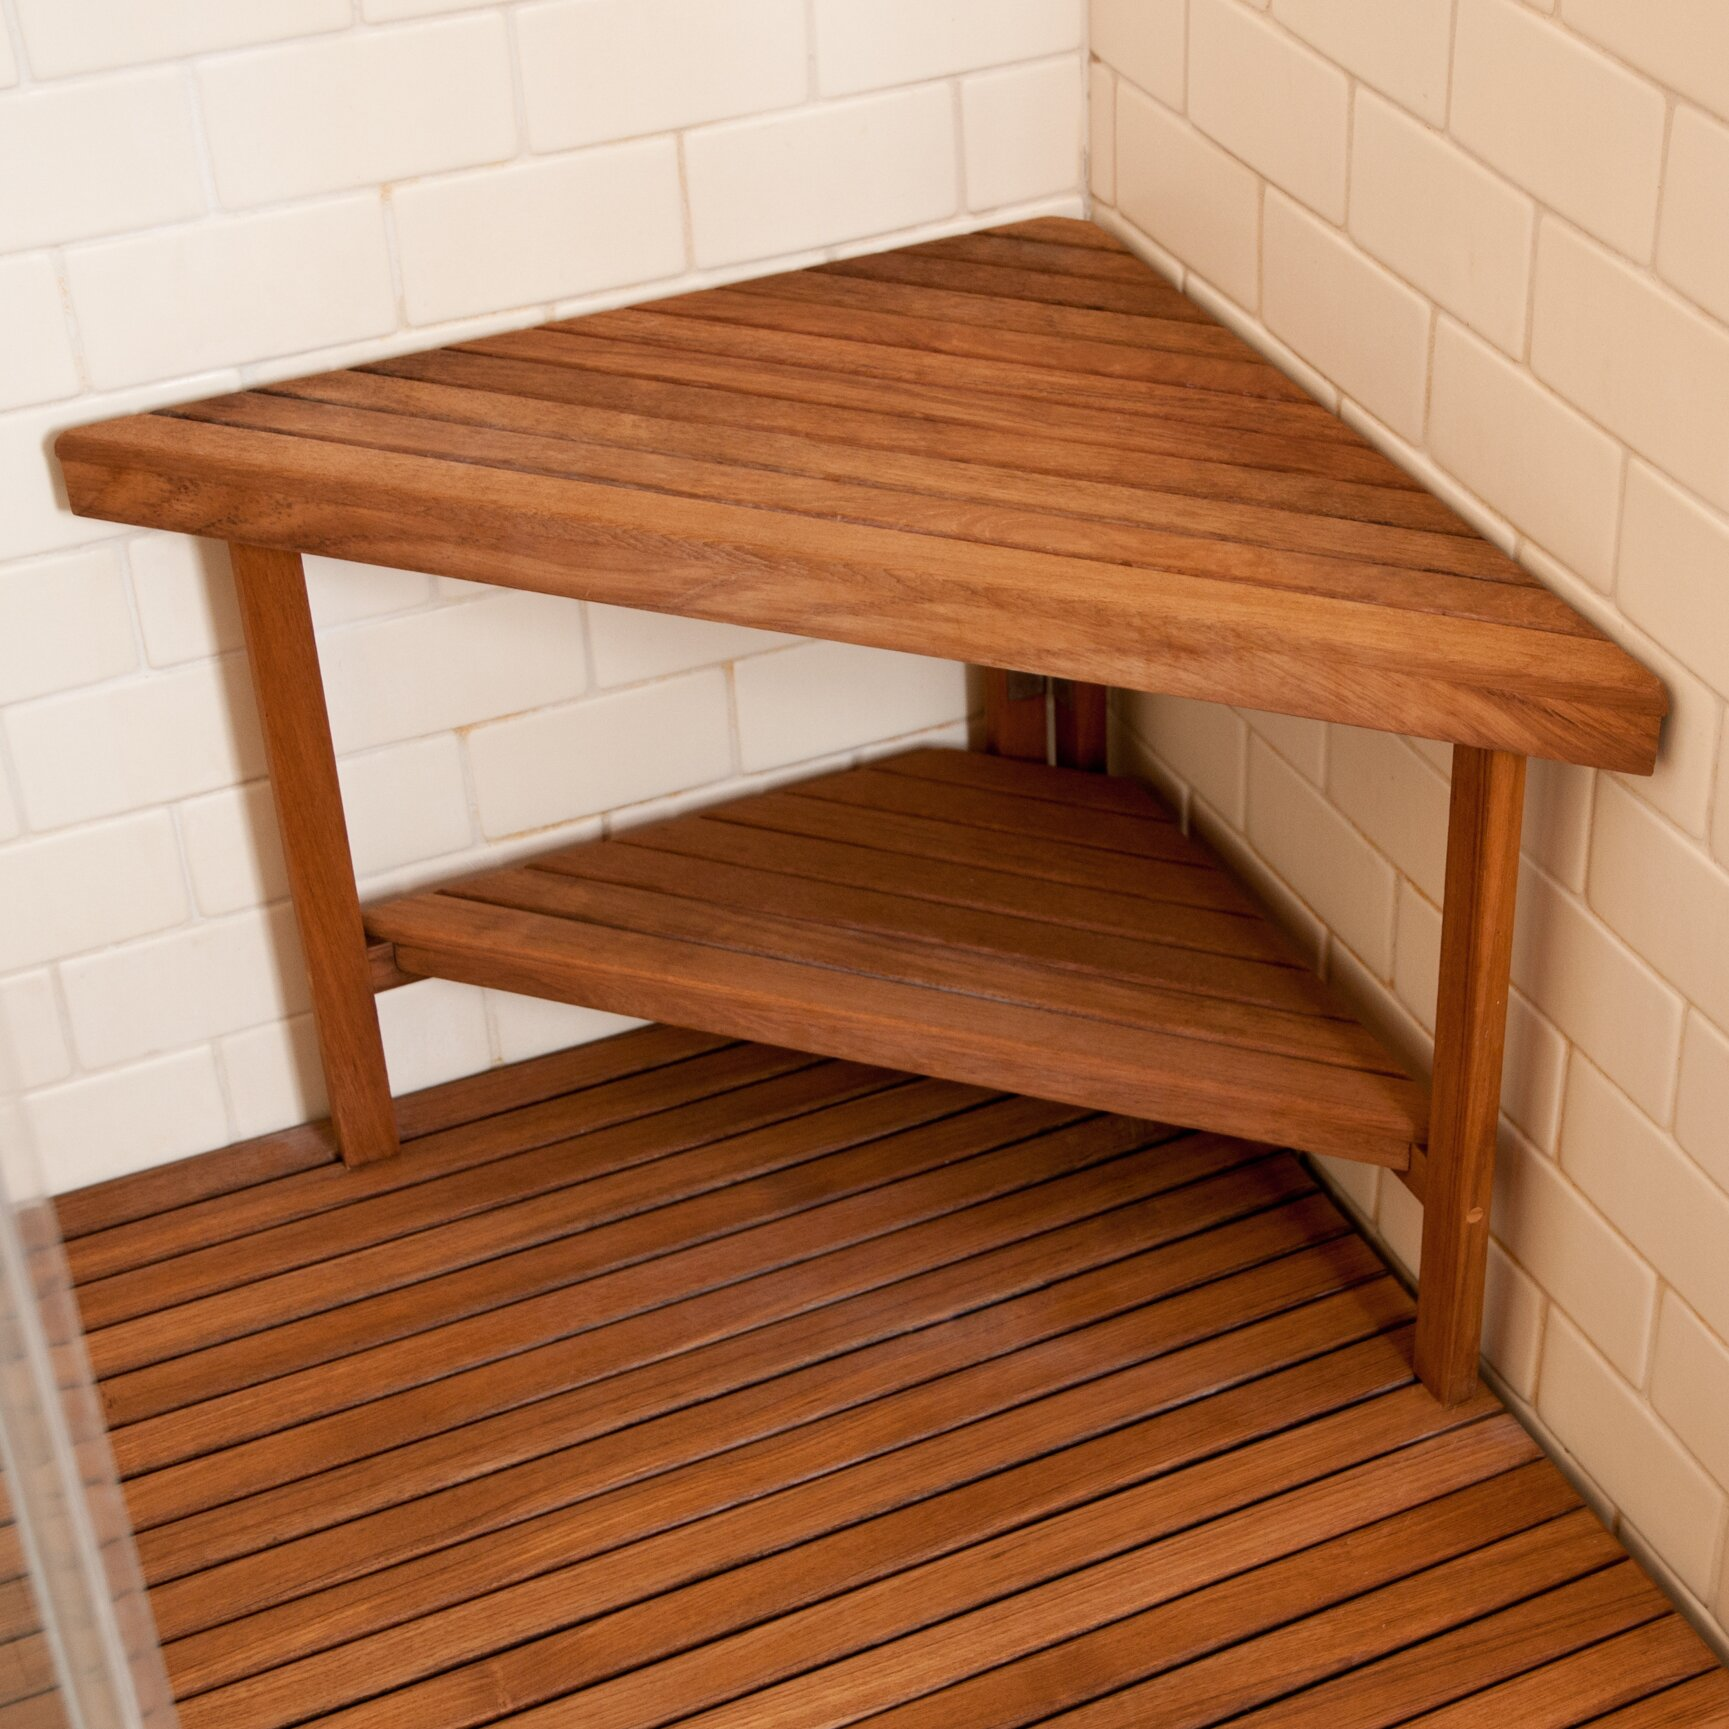 Teakworks4u Deluxe Teak Corner Shower Bench With Optional Shelf Reviews Wayfair